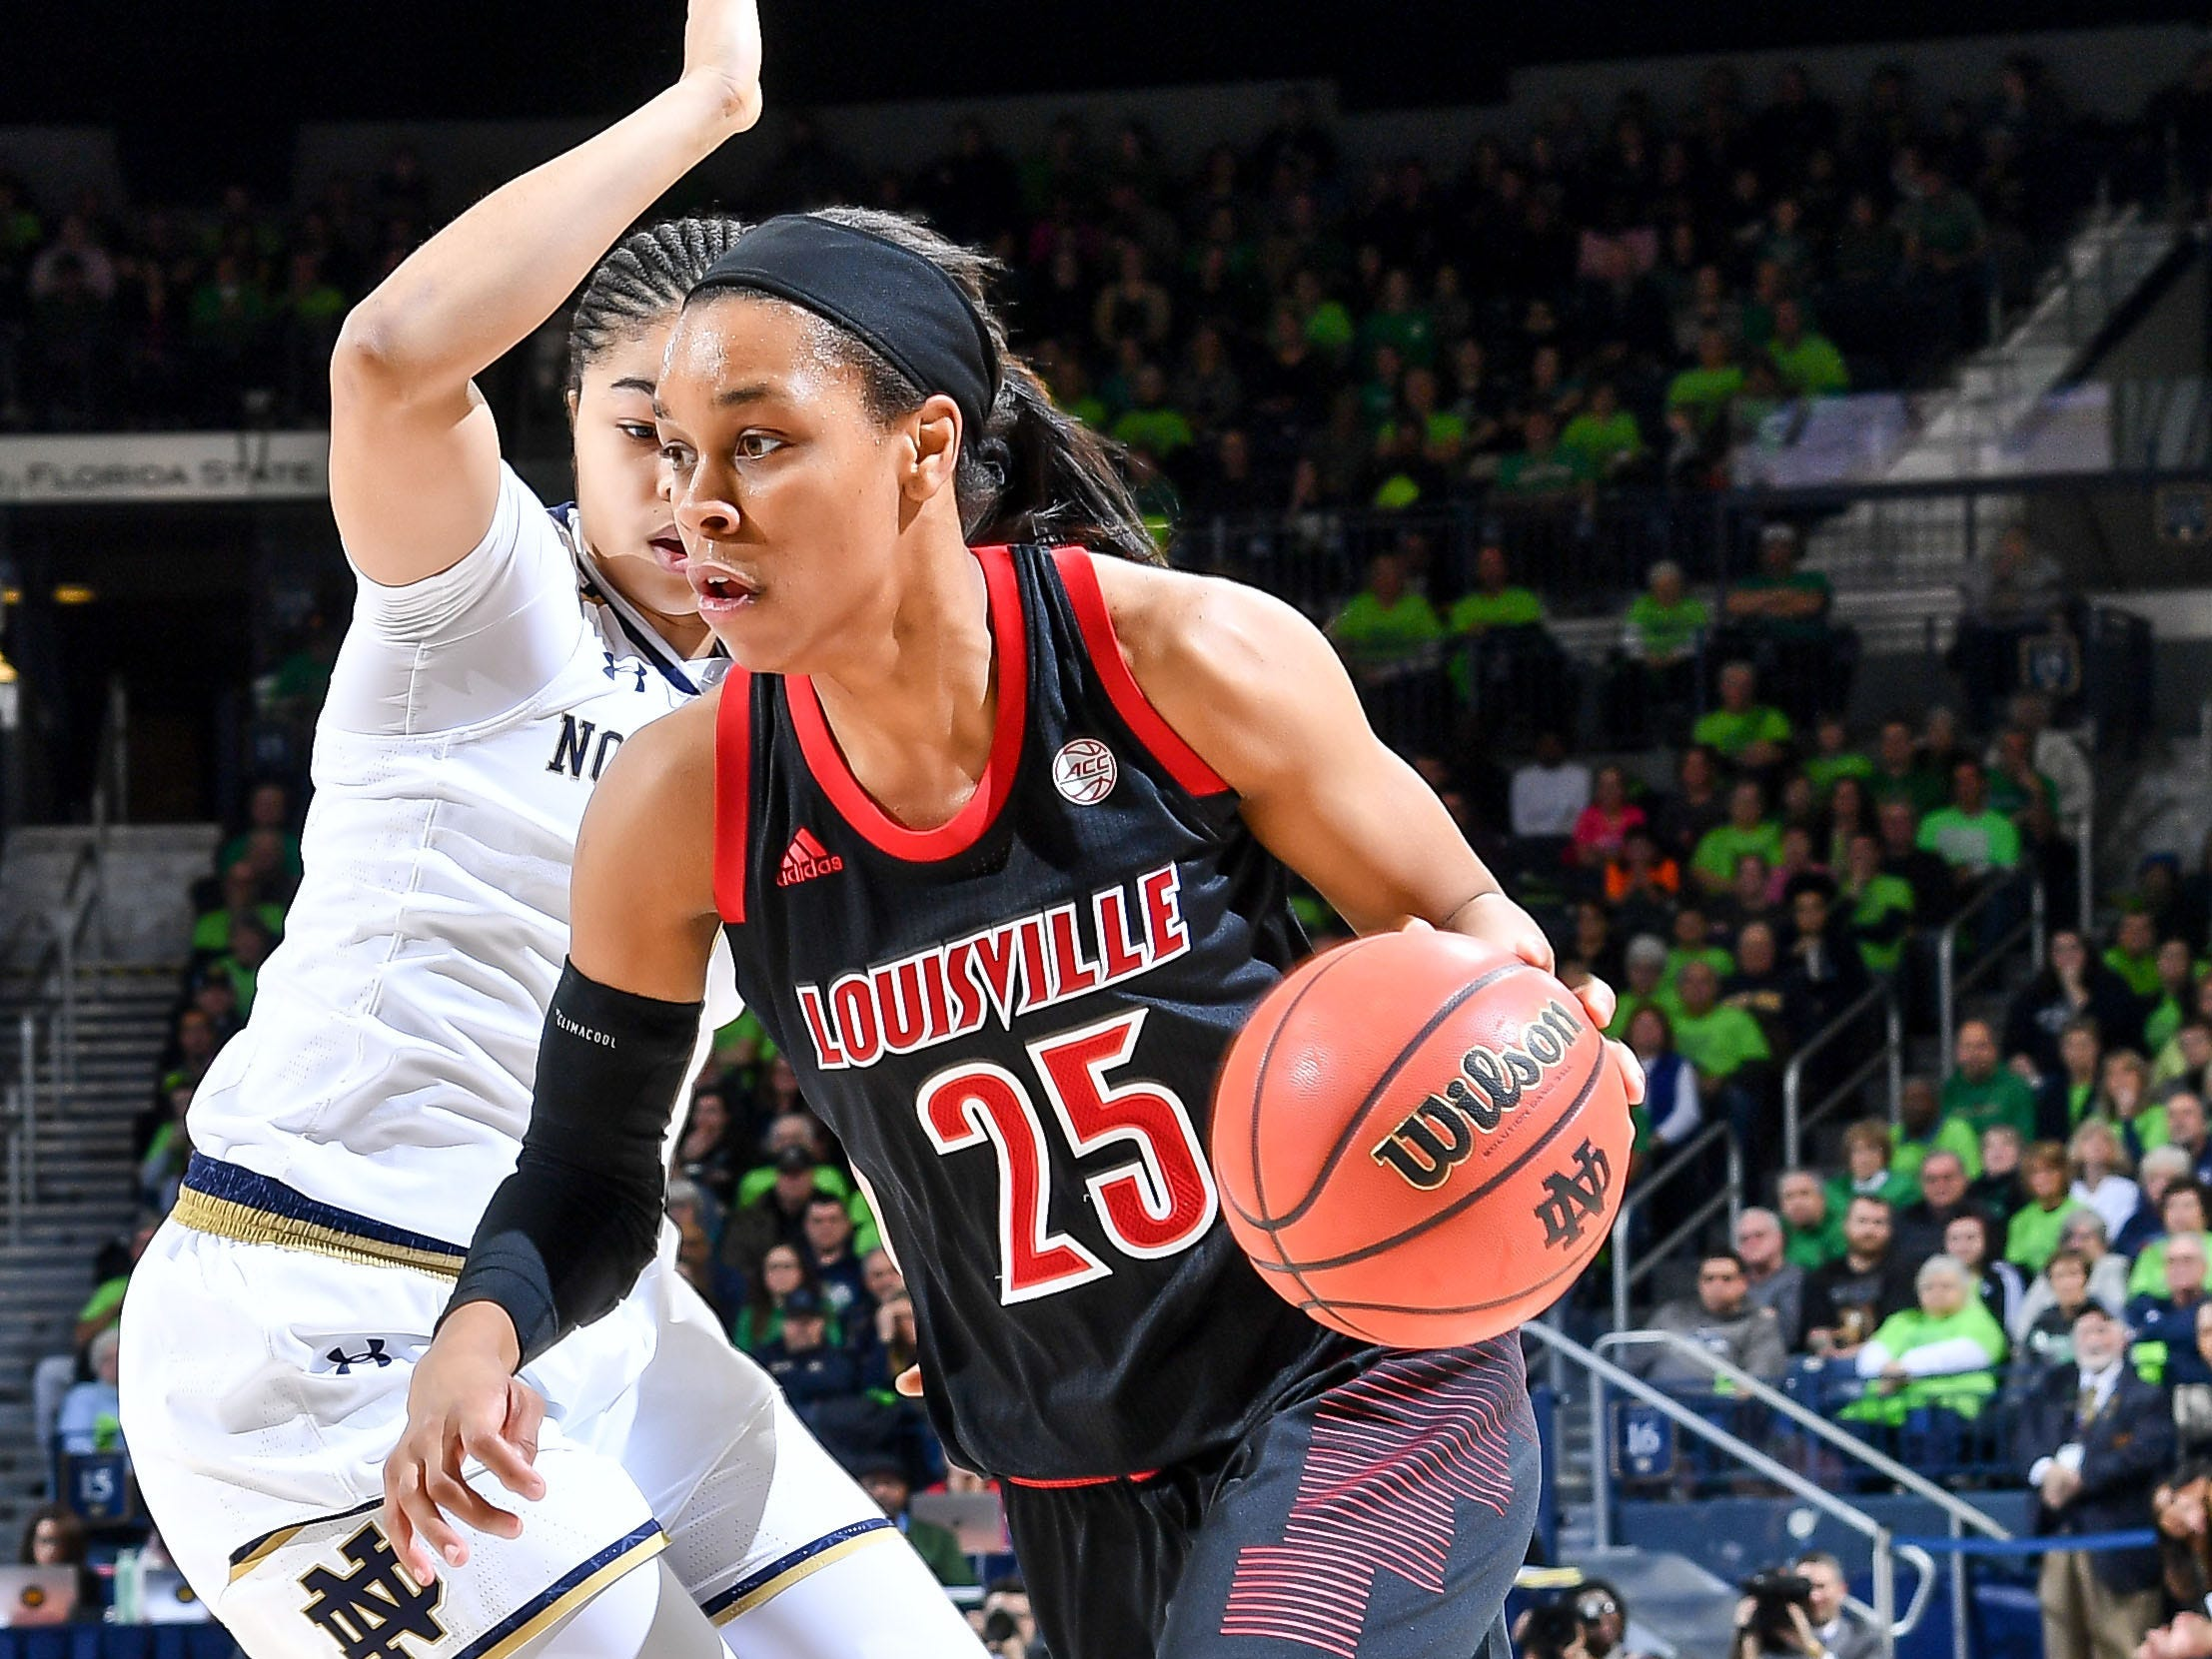 Jan 10, 2019; South Bend, IN, USA; Louisville Cardinals guard Asia Durr (25) drives to the basket as Notre Dame Fighting Irish guard Jordan Nixon (0) defends in the first half at the Purcell Pavilion.